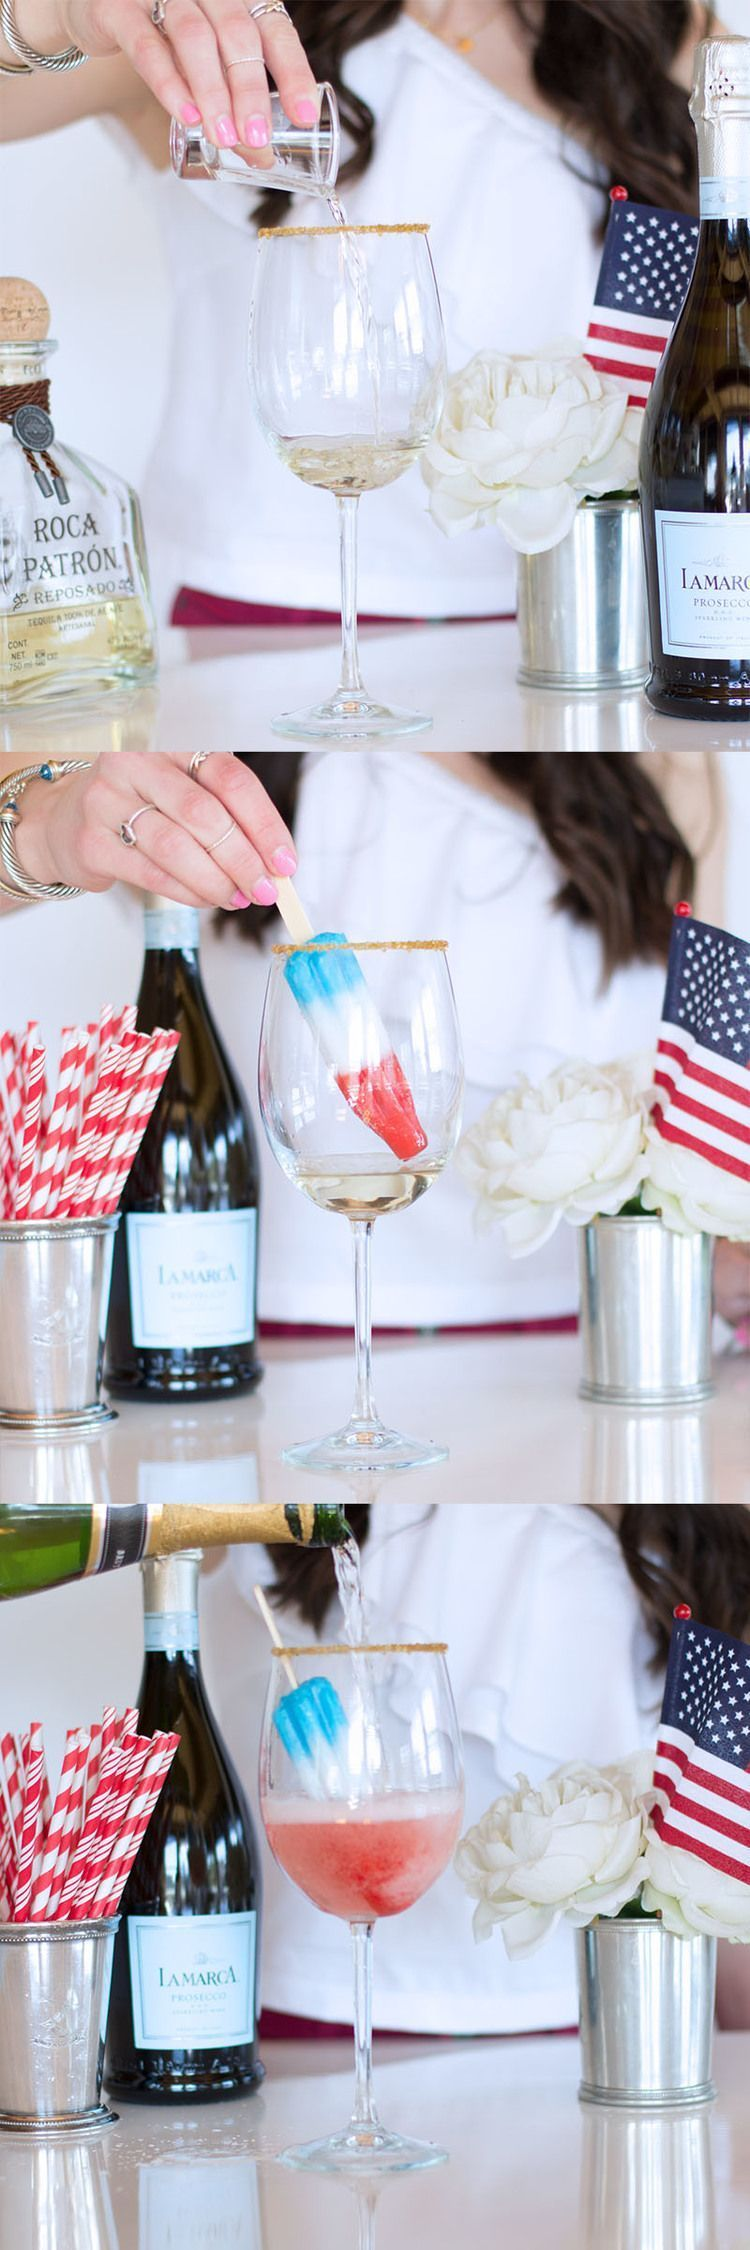 BOOZY POPSICLE DRINKS TO MAKE JULY 4TH EVEN COOLER #champagnepopsicles July 4th Cocktails, Prosecco Popsicle Cocktails for the Fourth of July, Red, White, and Blue Champagne Cocktail for Independence Day on www.me-and-mrjones.com! #champagnepopsicles BOOZY POPSICLE DRINKS TO MAKE JULY 4TH EVEN COOLER #champagnepopsicles July 4th Cocktails, Prosecco Popsicle Cocktails for the Fourth of July, Red, White, and Blue Champagne Cocktail for Independence Day on www.me-and-mrjones.com! #champagnepopsicles